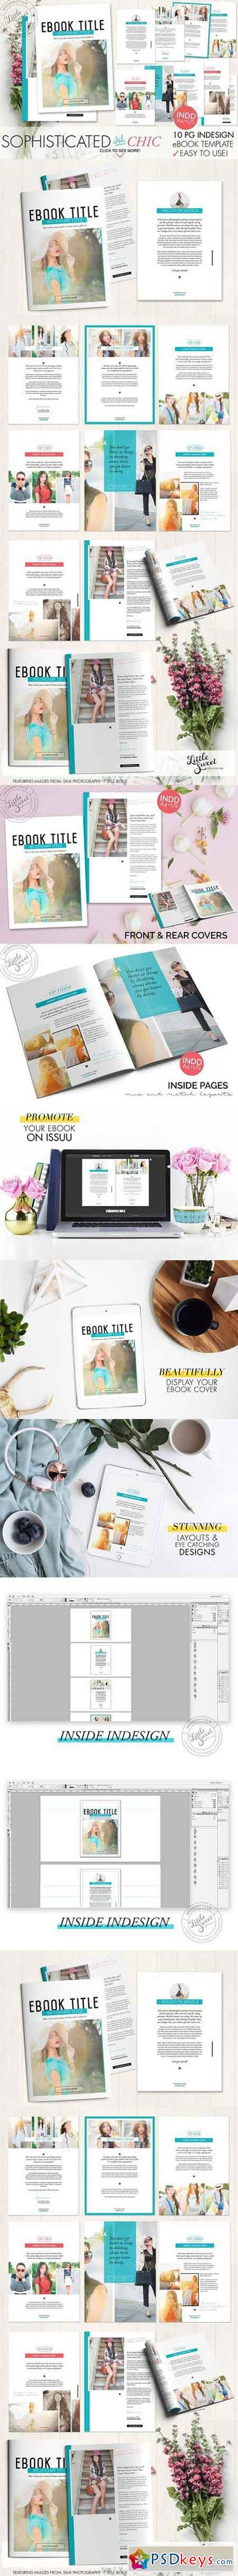 10 page indesign indd ebook template 999955 free download